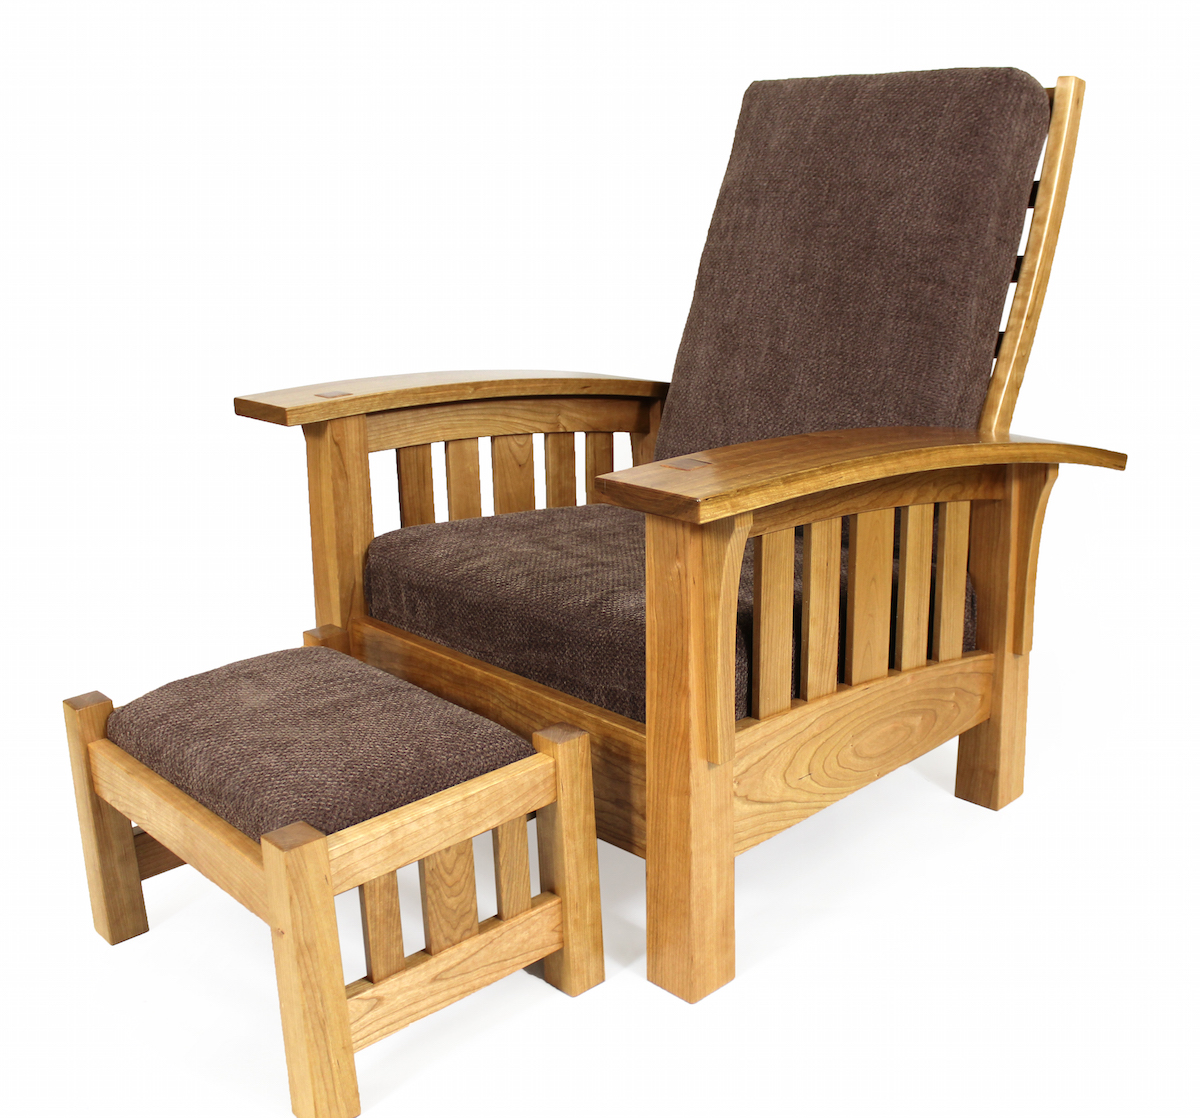 sc 1 st  The Wood Whisperer Guild & Morris Chair - The Wood Whisperer Guild